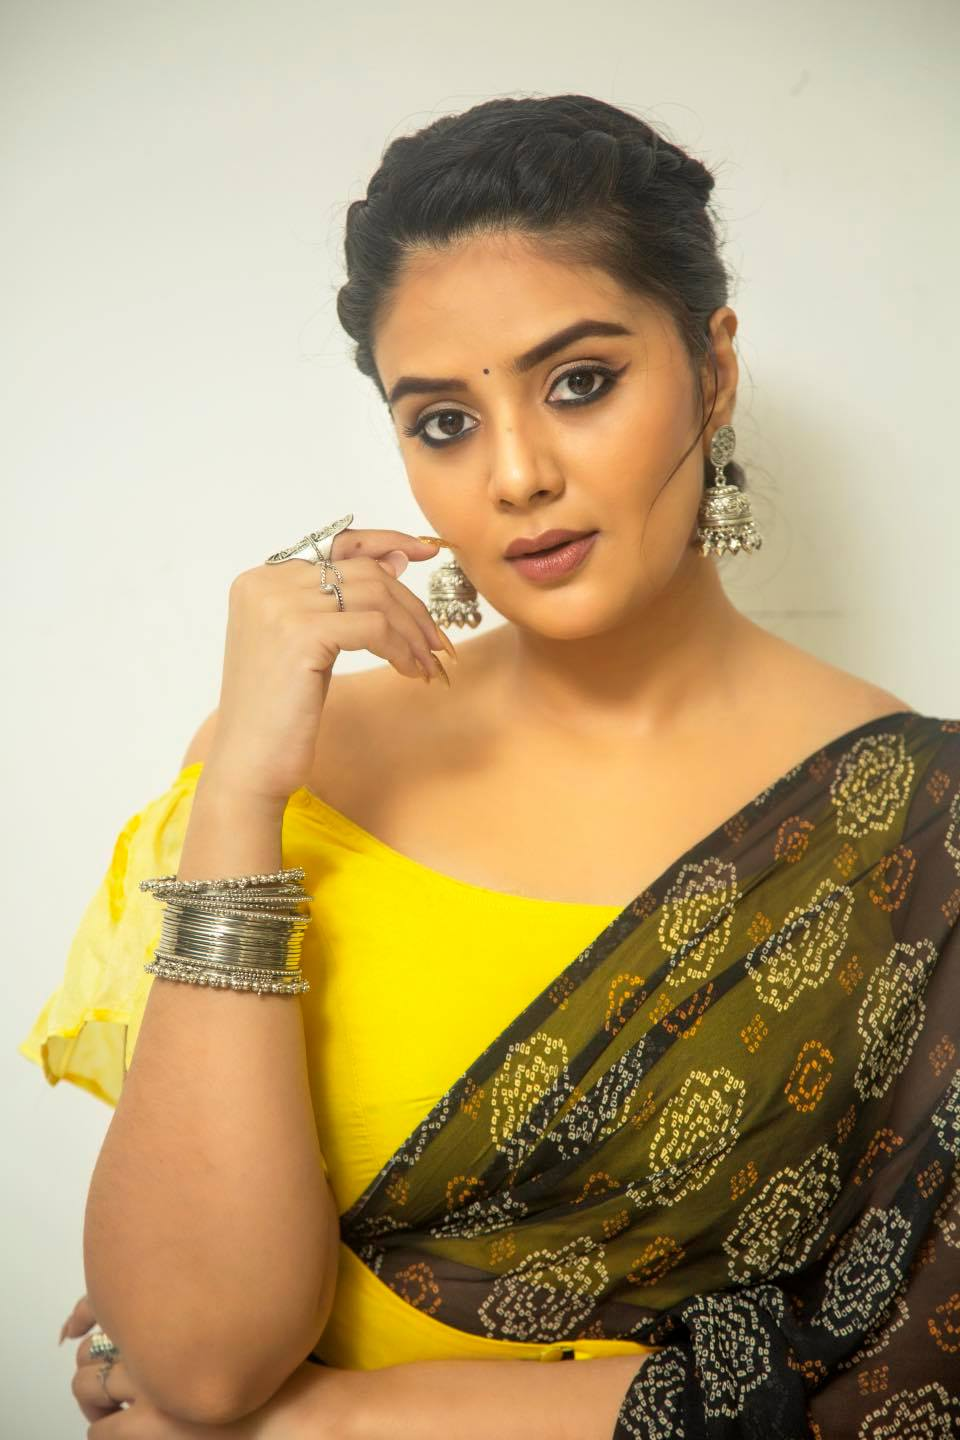 """Beautiful actress Sreemukhi for """"Oh Womaniya"""" in saree and off shoulder blouse.  Outfit by Rekhas couture .  Styling by Kirthana sunil .  PC Chinthuu klicks . Make up by Nookesh Malla . Hair Gopi bridal makeovers  